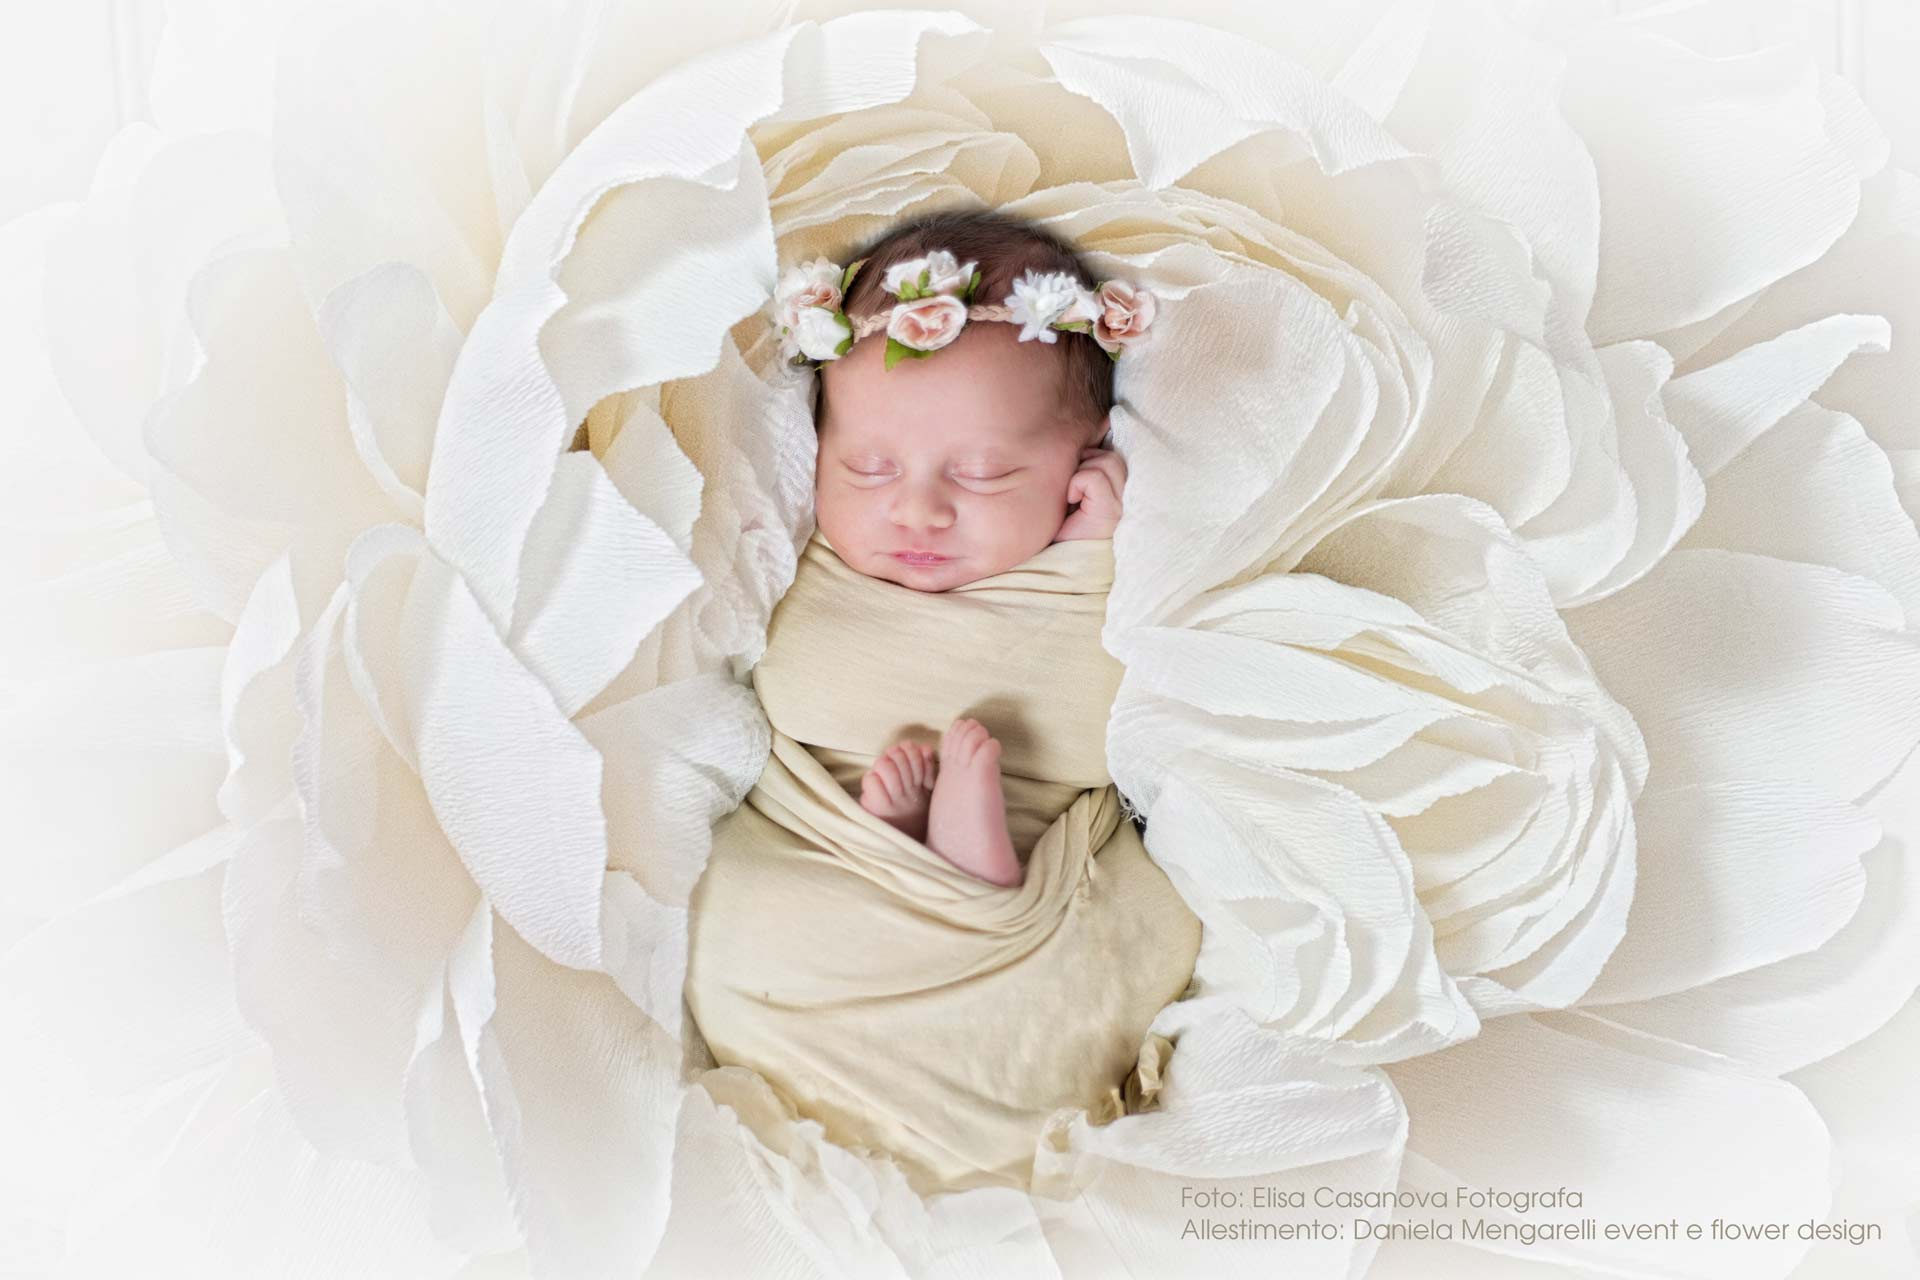 Daniela Mengarelli Event And Flower Design | Newborn Photography